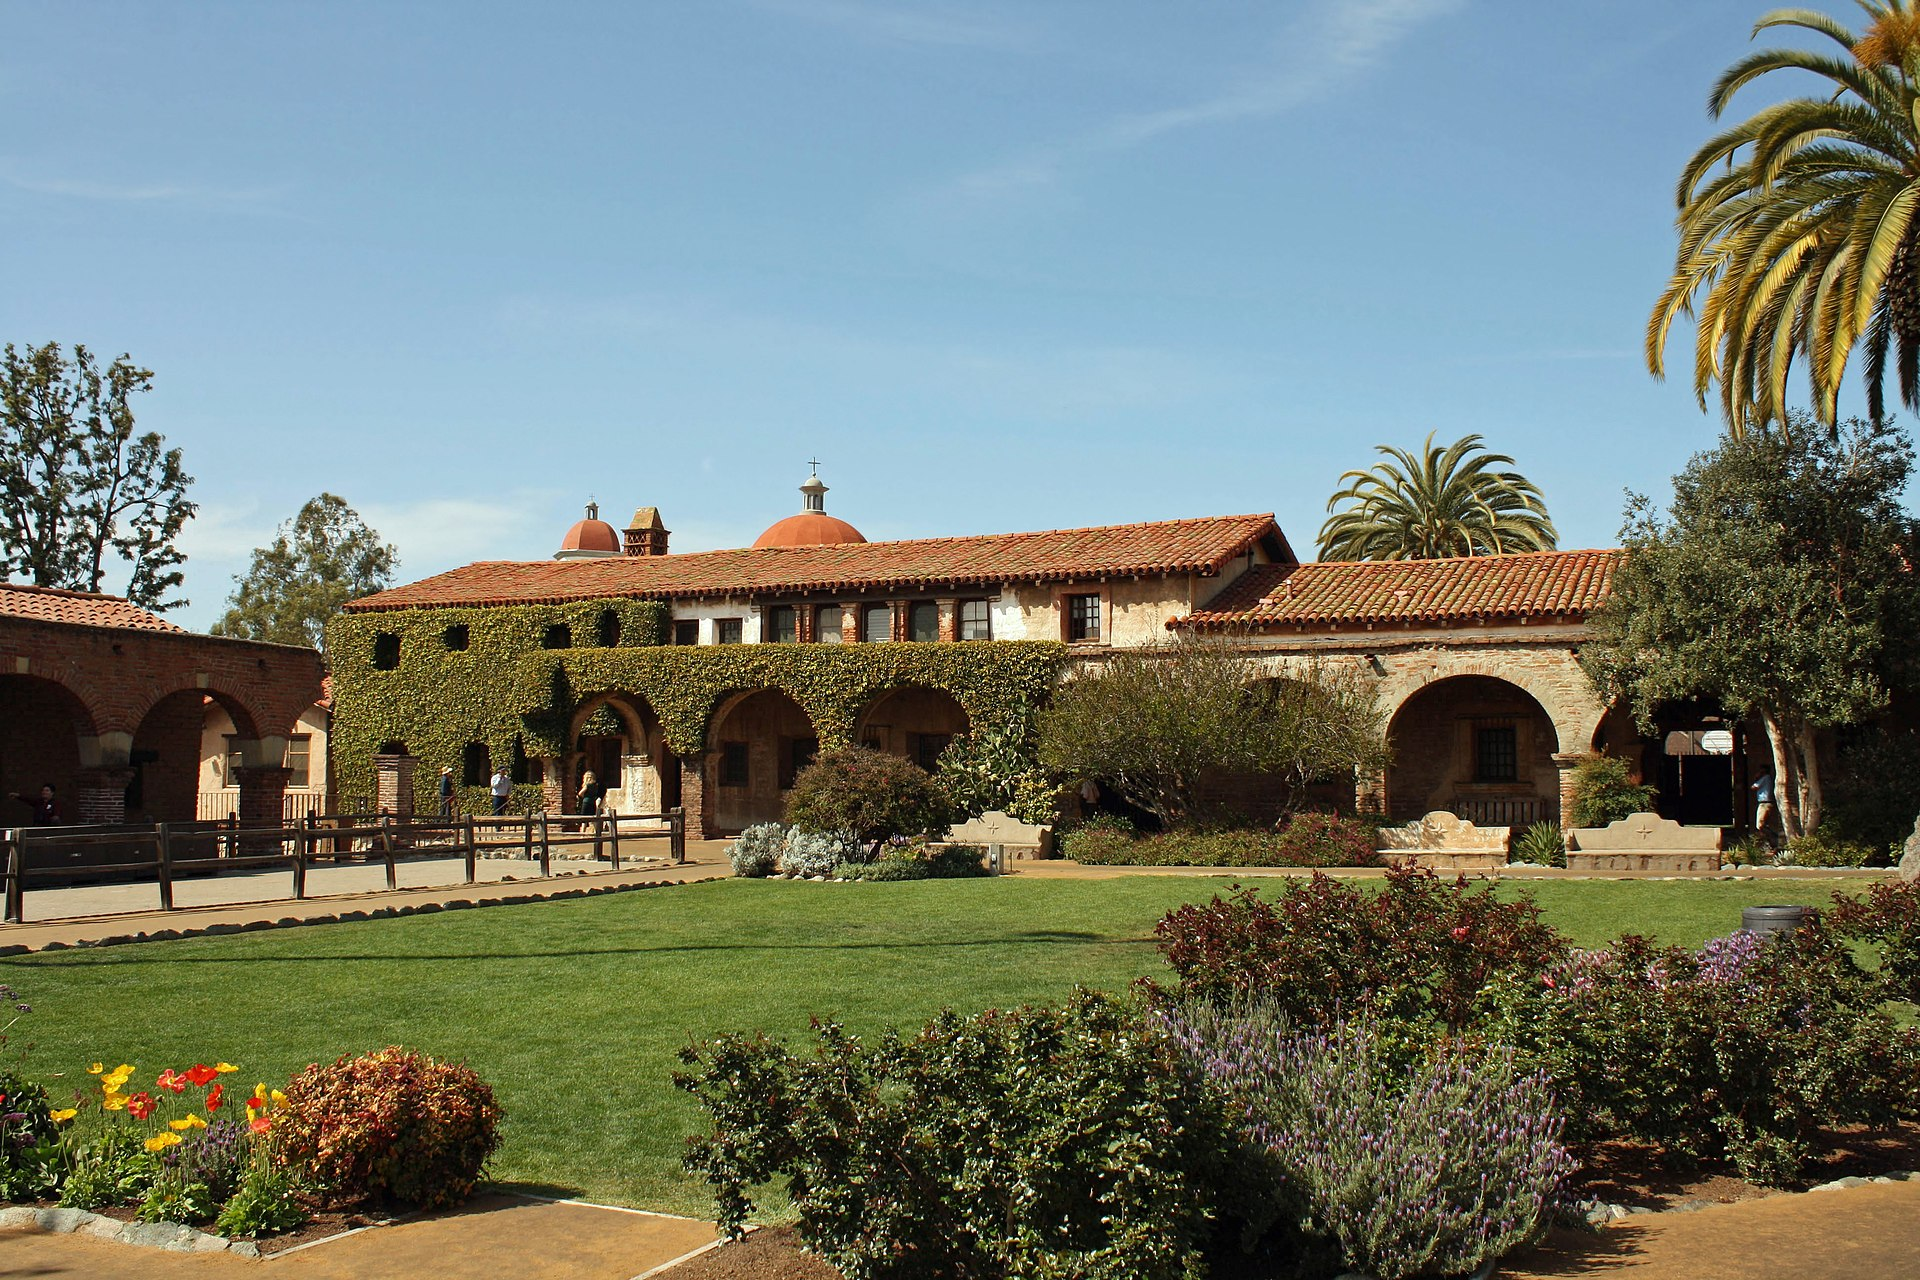 san juan capistrano singles Find meetups in san juan capistrano, california about singles and meet people in your local community who share your interests.